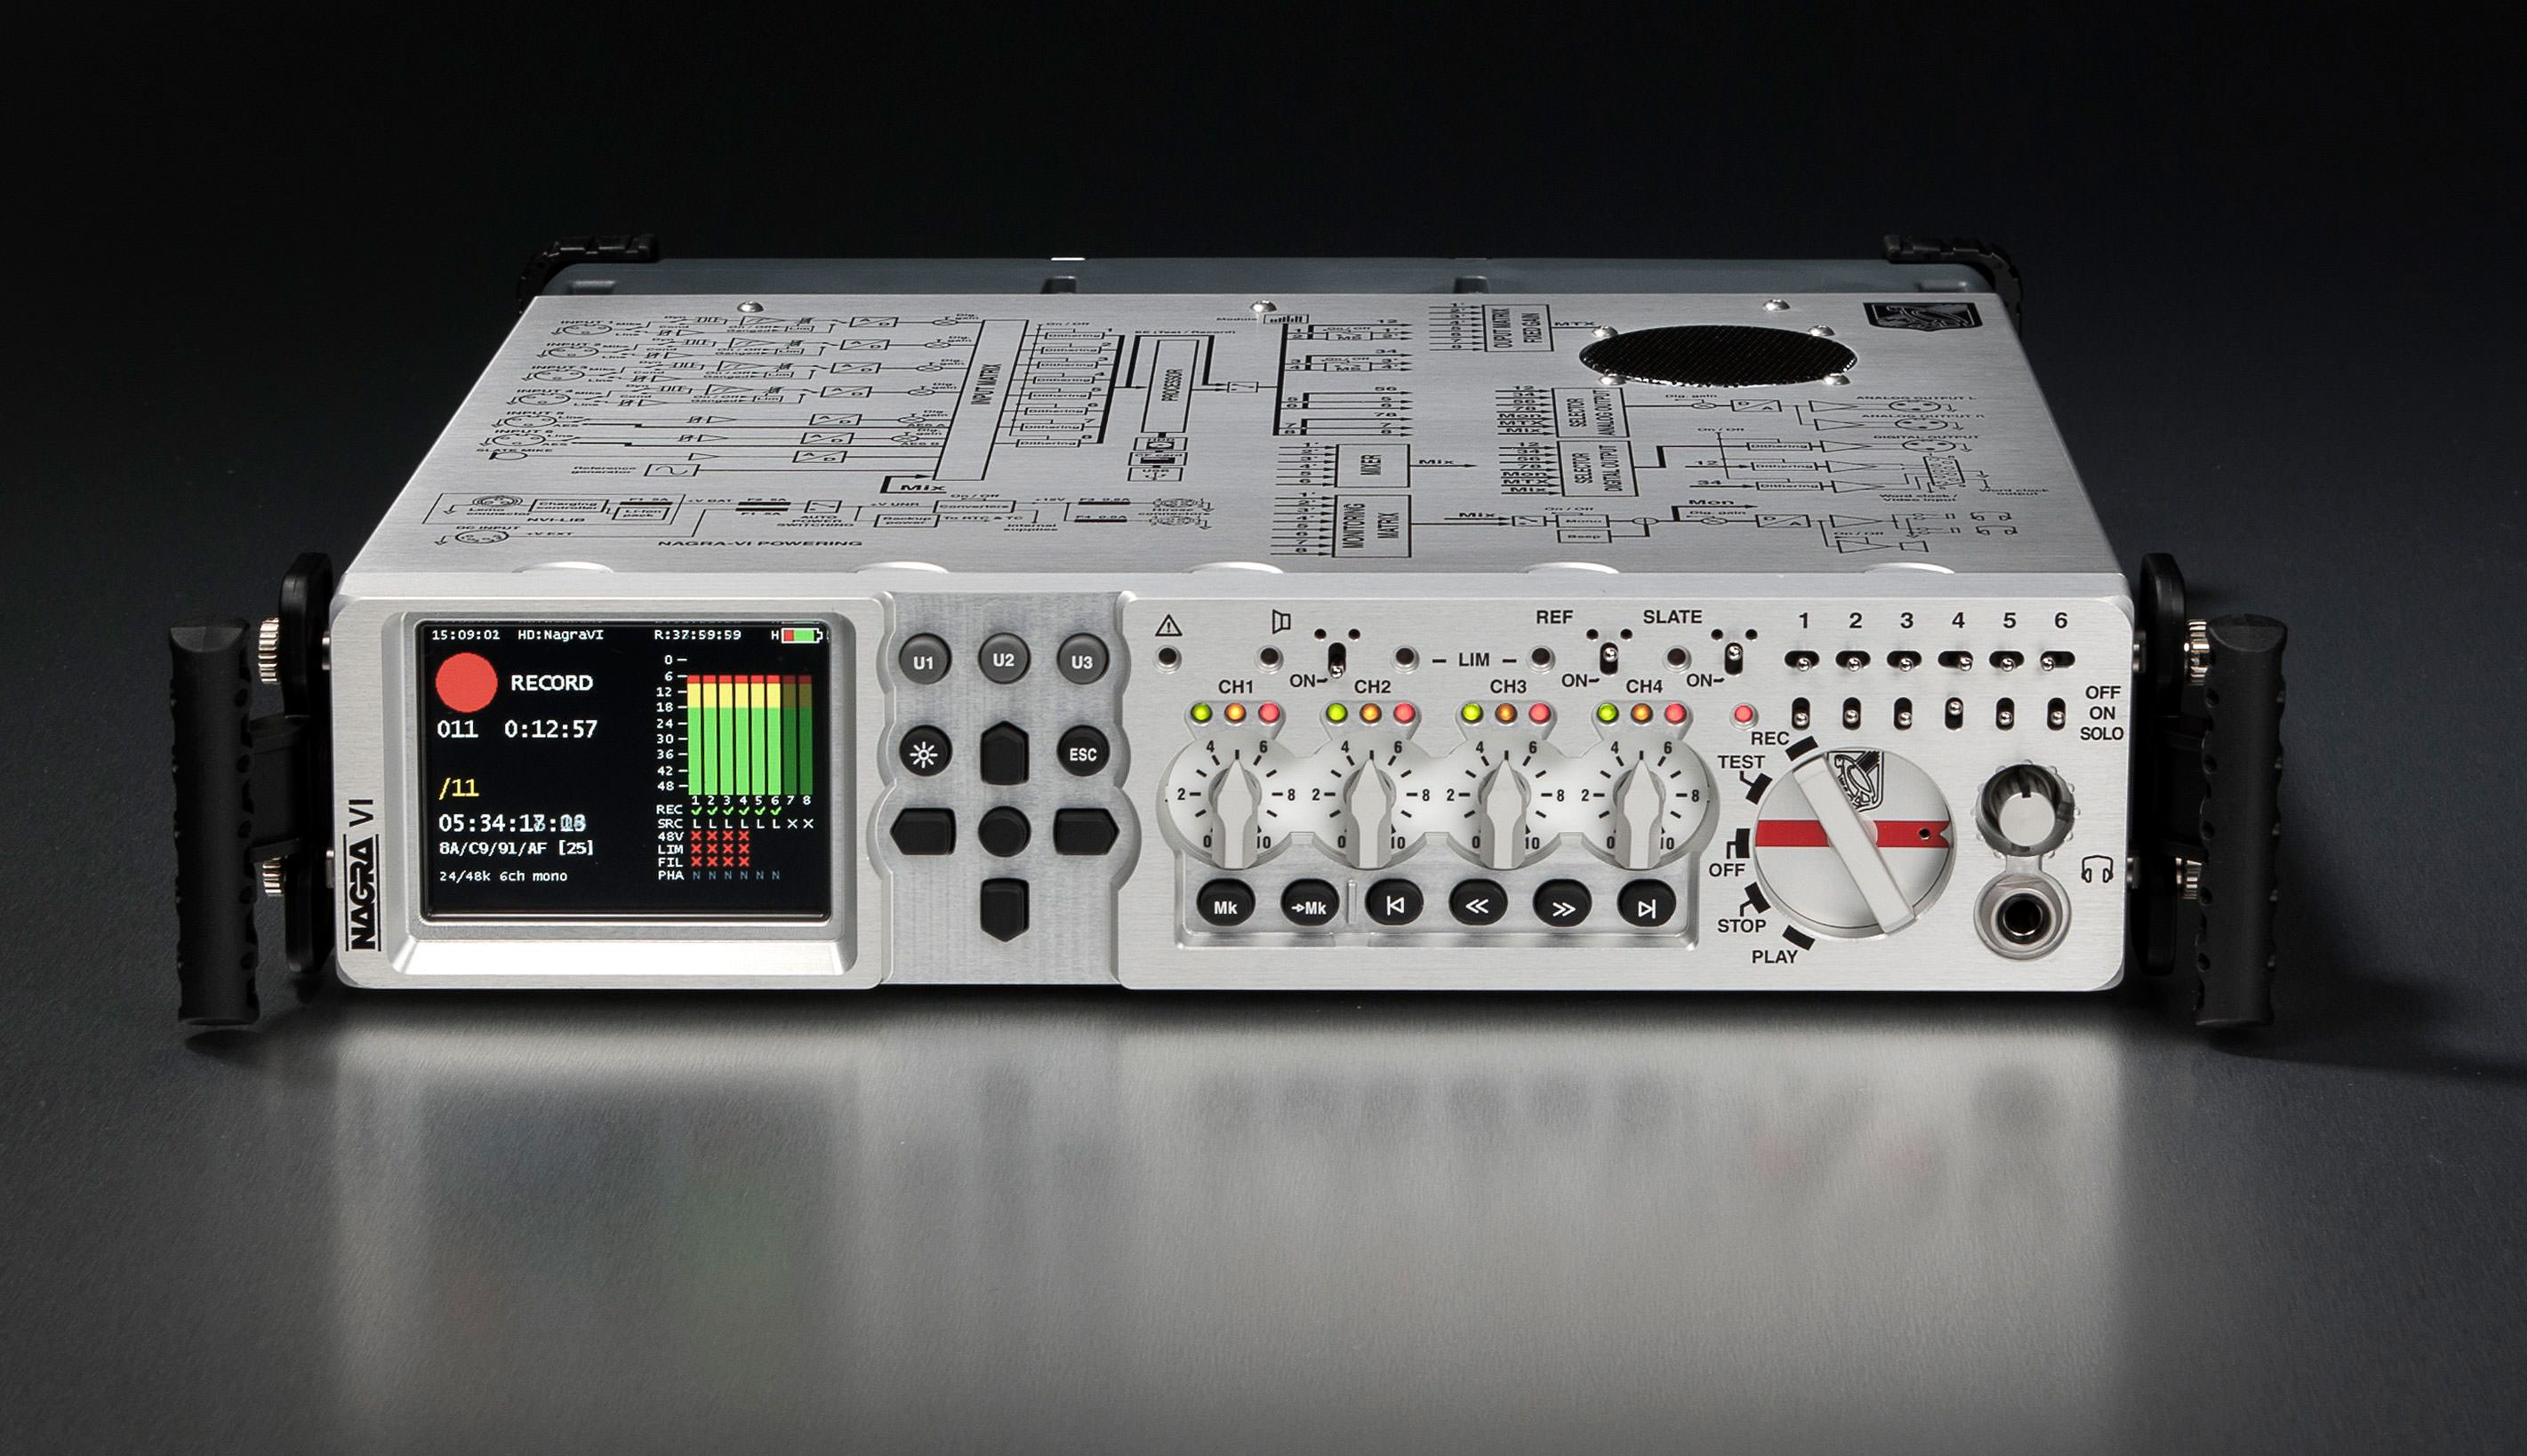 nagra vi audio recorder 6 2 tracks hd cf 60th anniversary rh nagrit com Nagra Audio Nagra USA